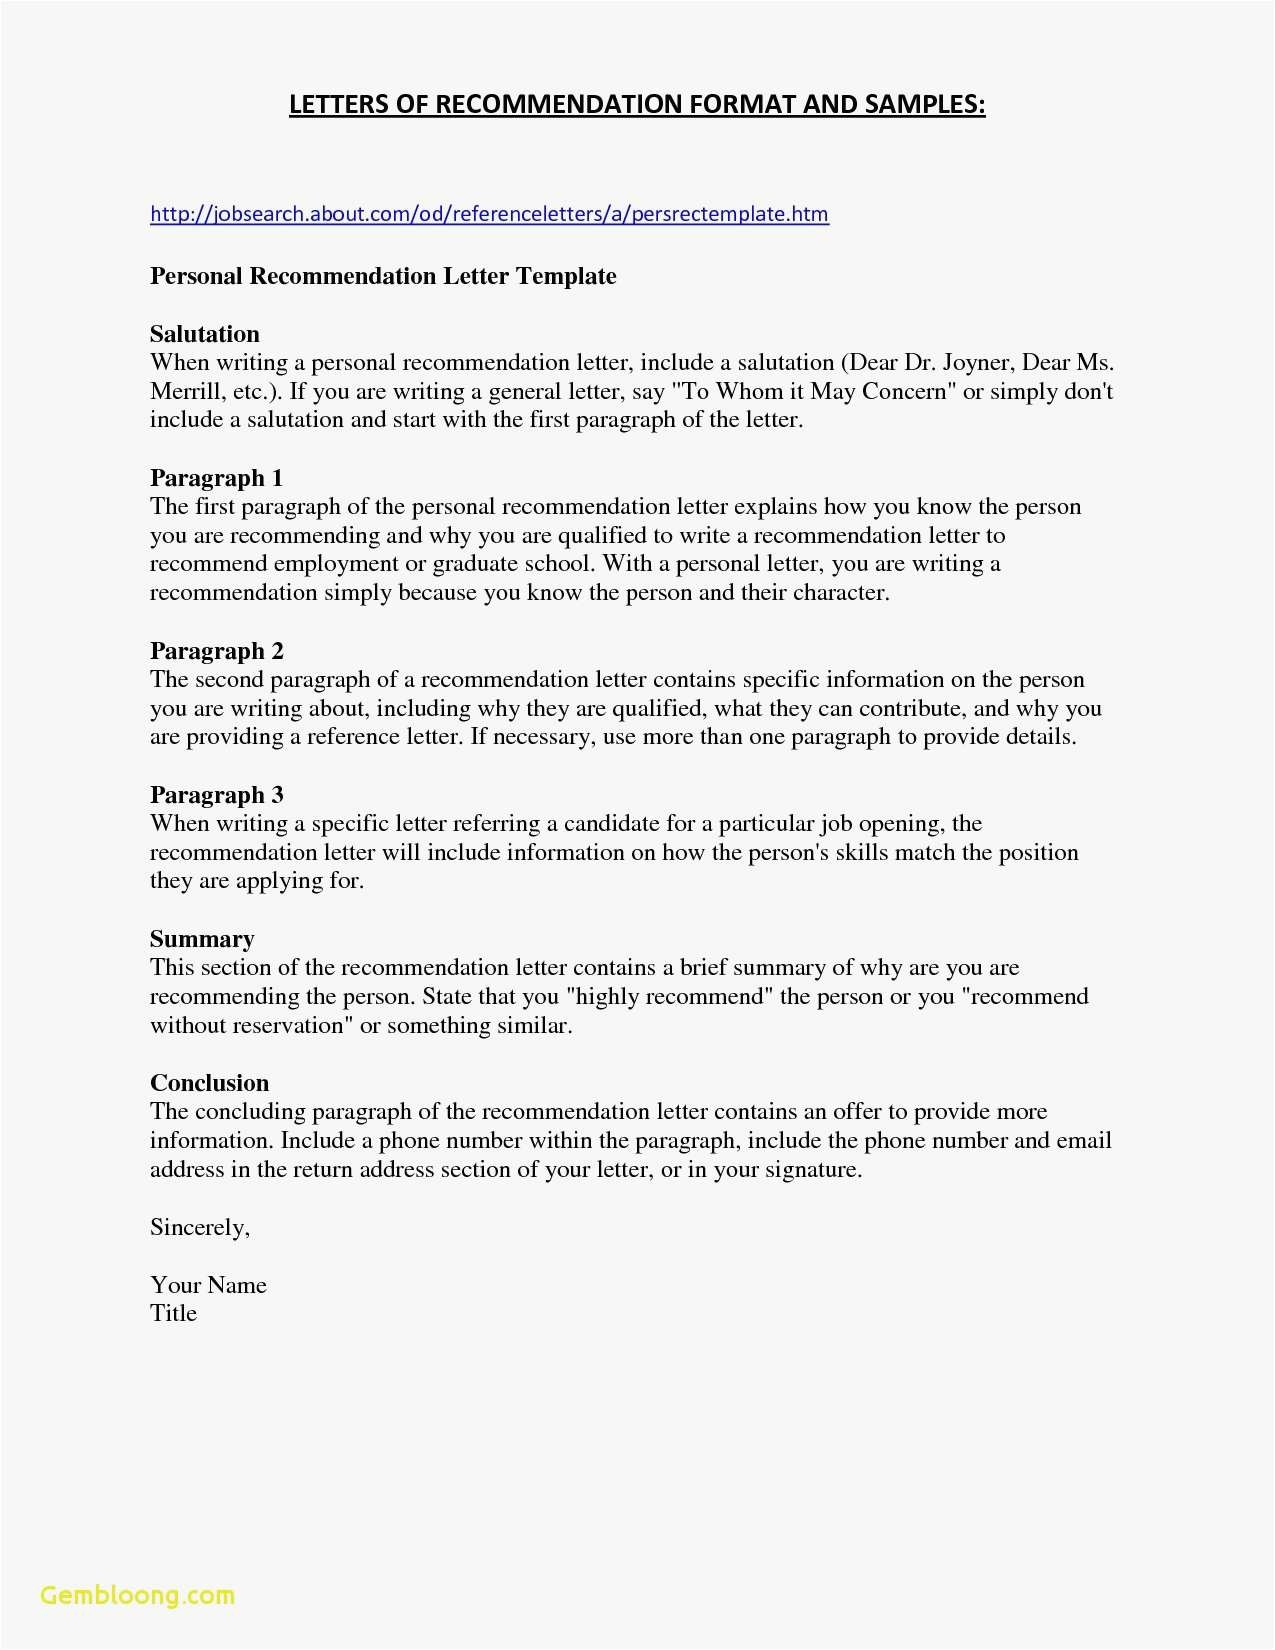 template for letter of recommendation for a job Collection-Template Letter Re mendation Job Valid Letter Re Mendation Template For Employee Model Tenure Re 11-m